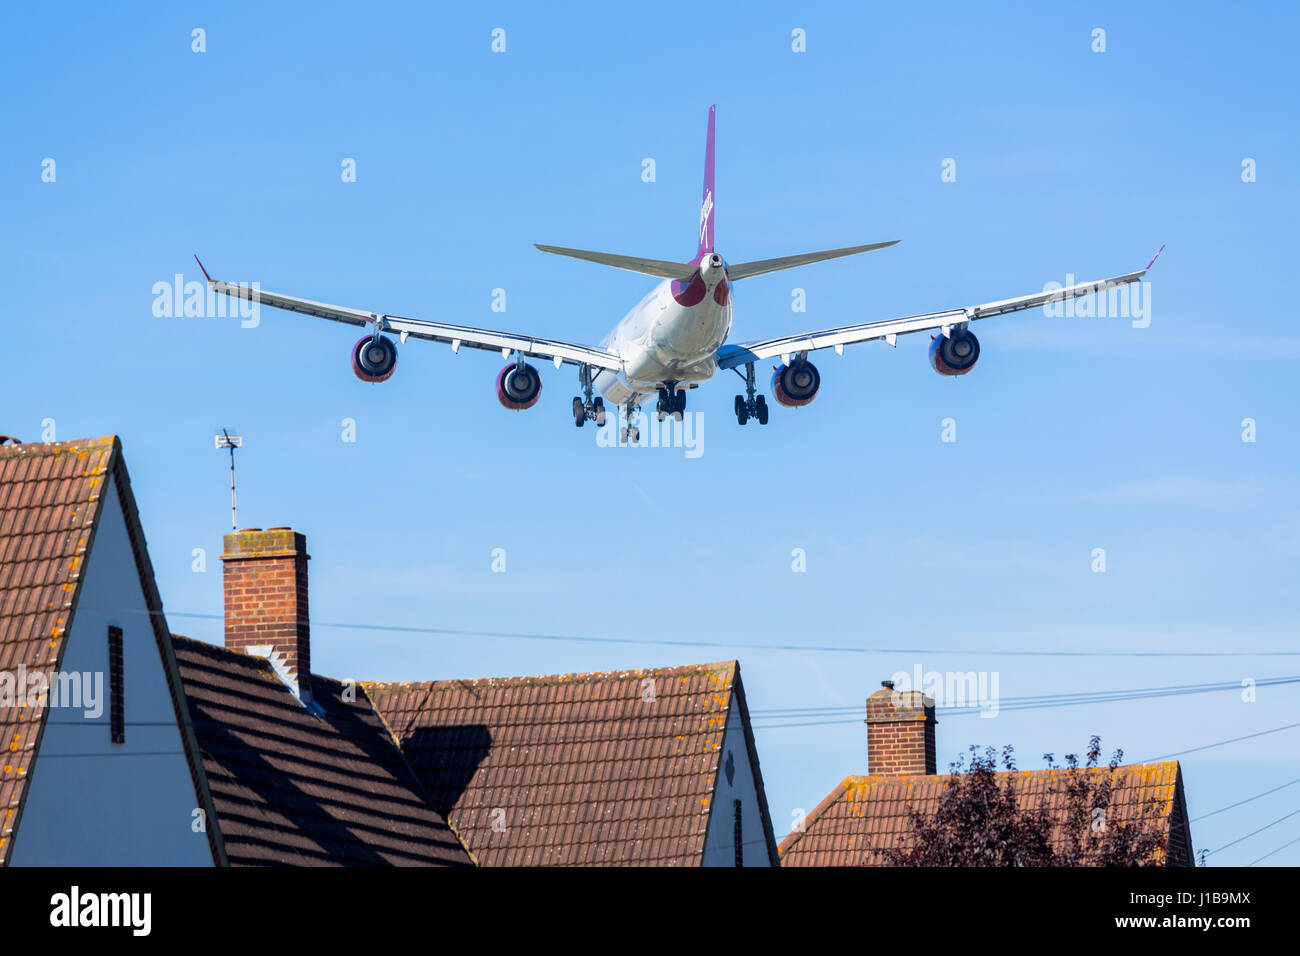 Aircraft flying low over houses causing noise pollution, Heathrow Airport, London, UK - Stock Image